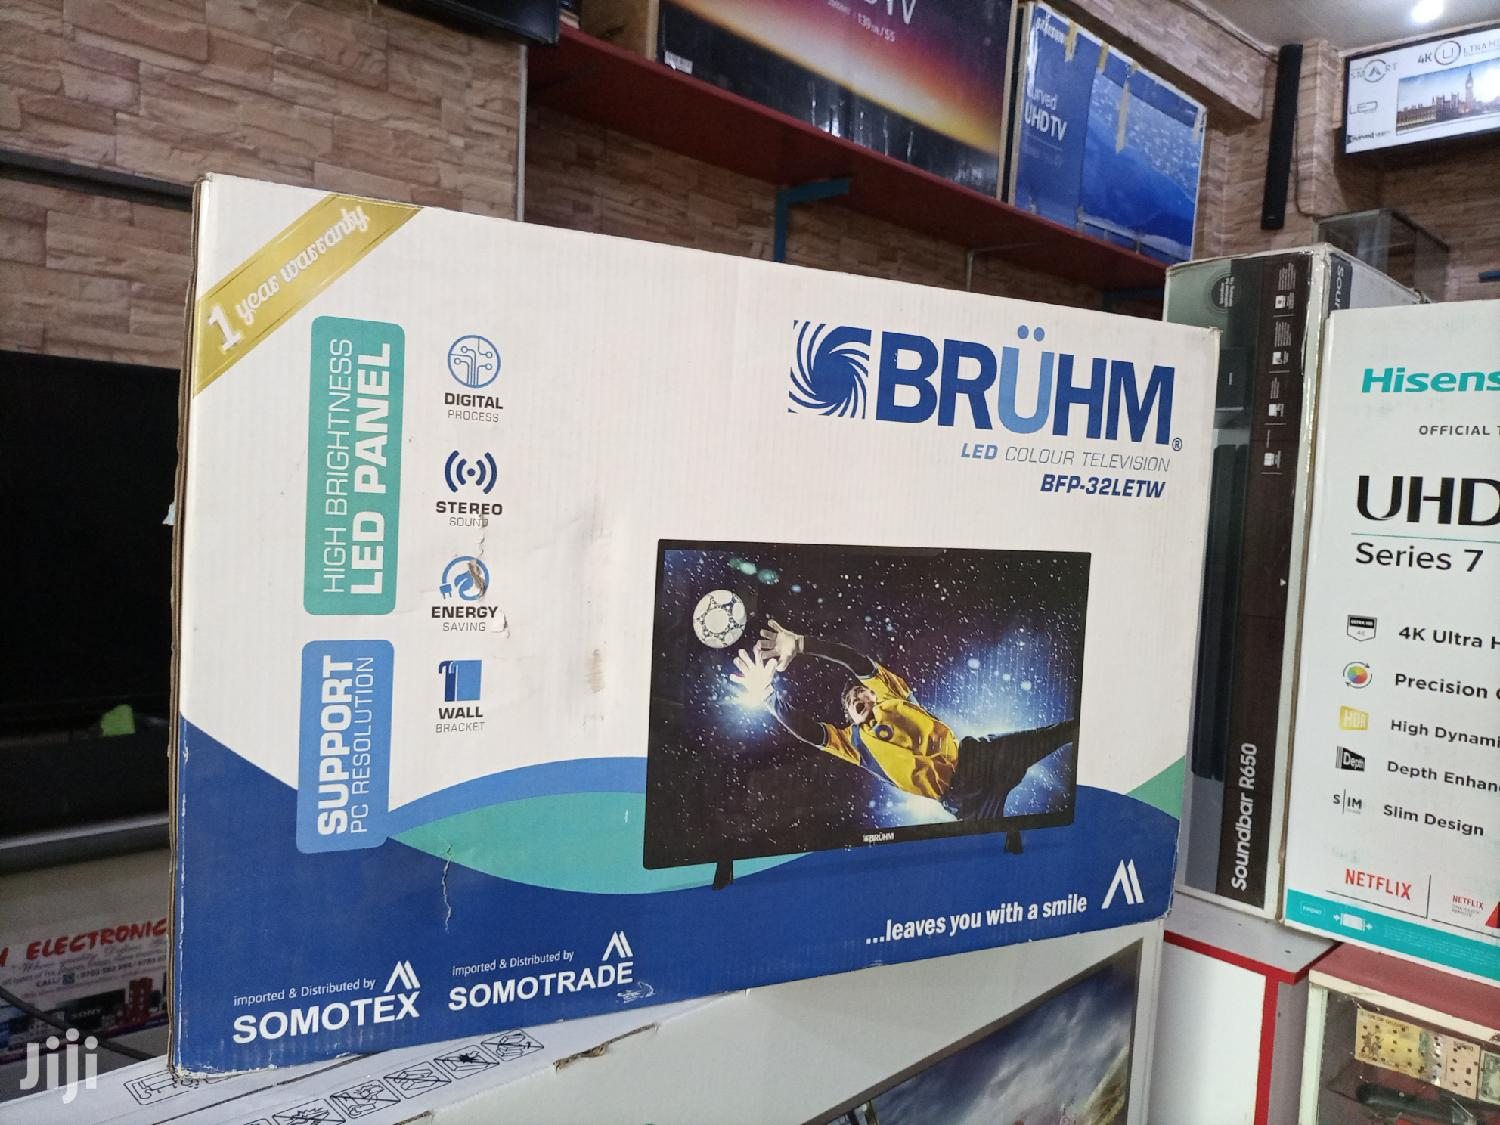 Bruhm 32 Inches LED Digital Flat Screen Tv. | TV & DVD Equipment for sale in Kampala, Central Region, Uganda